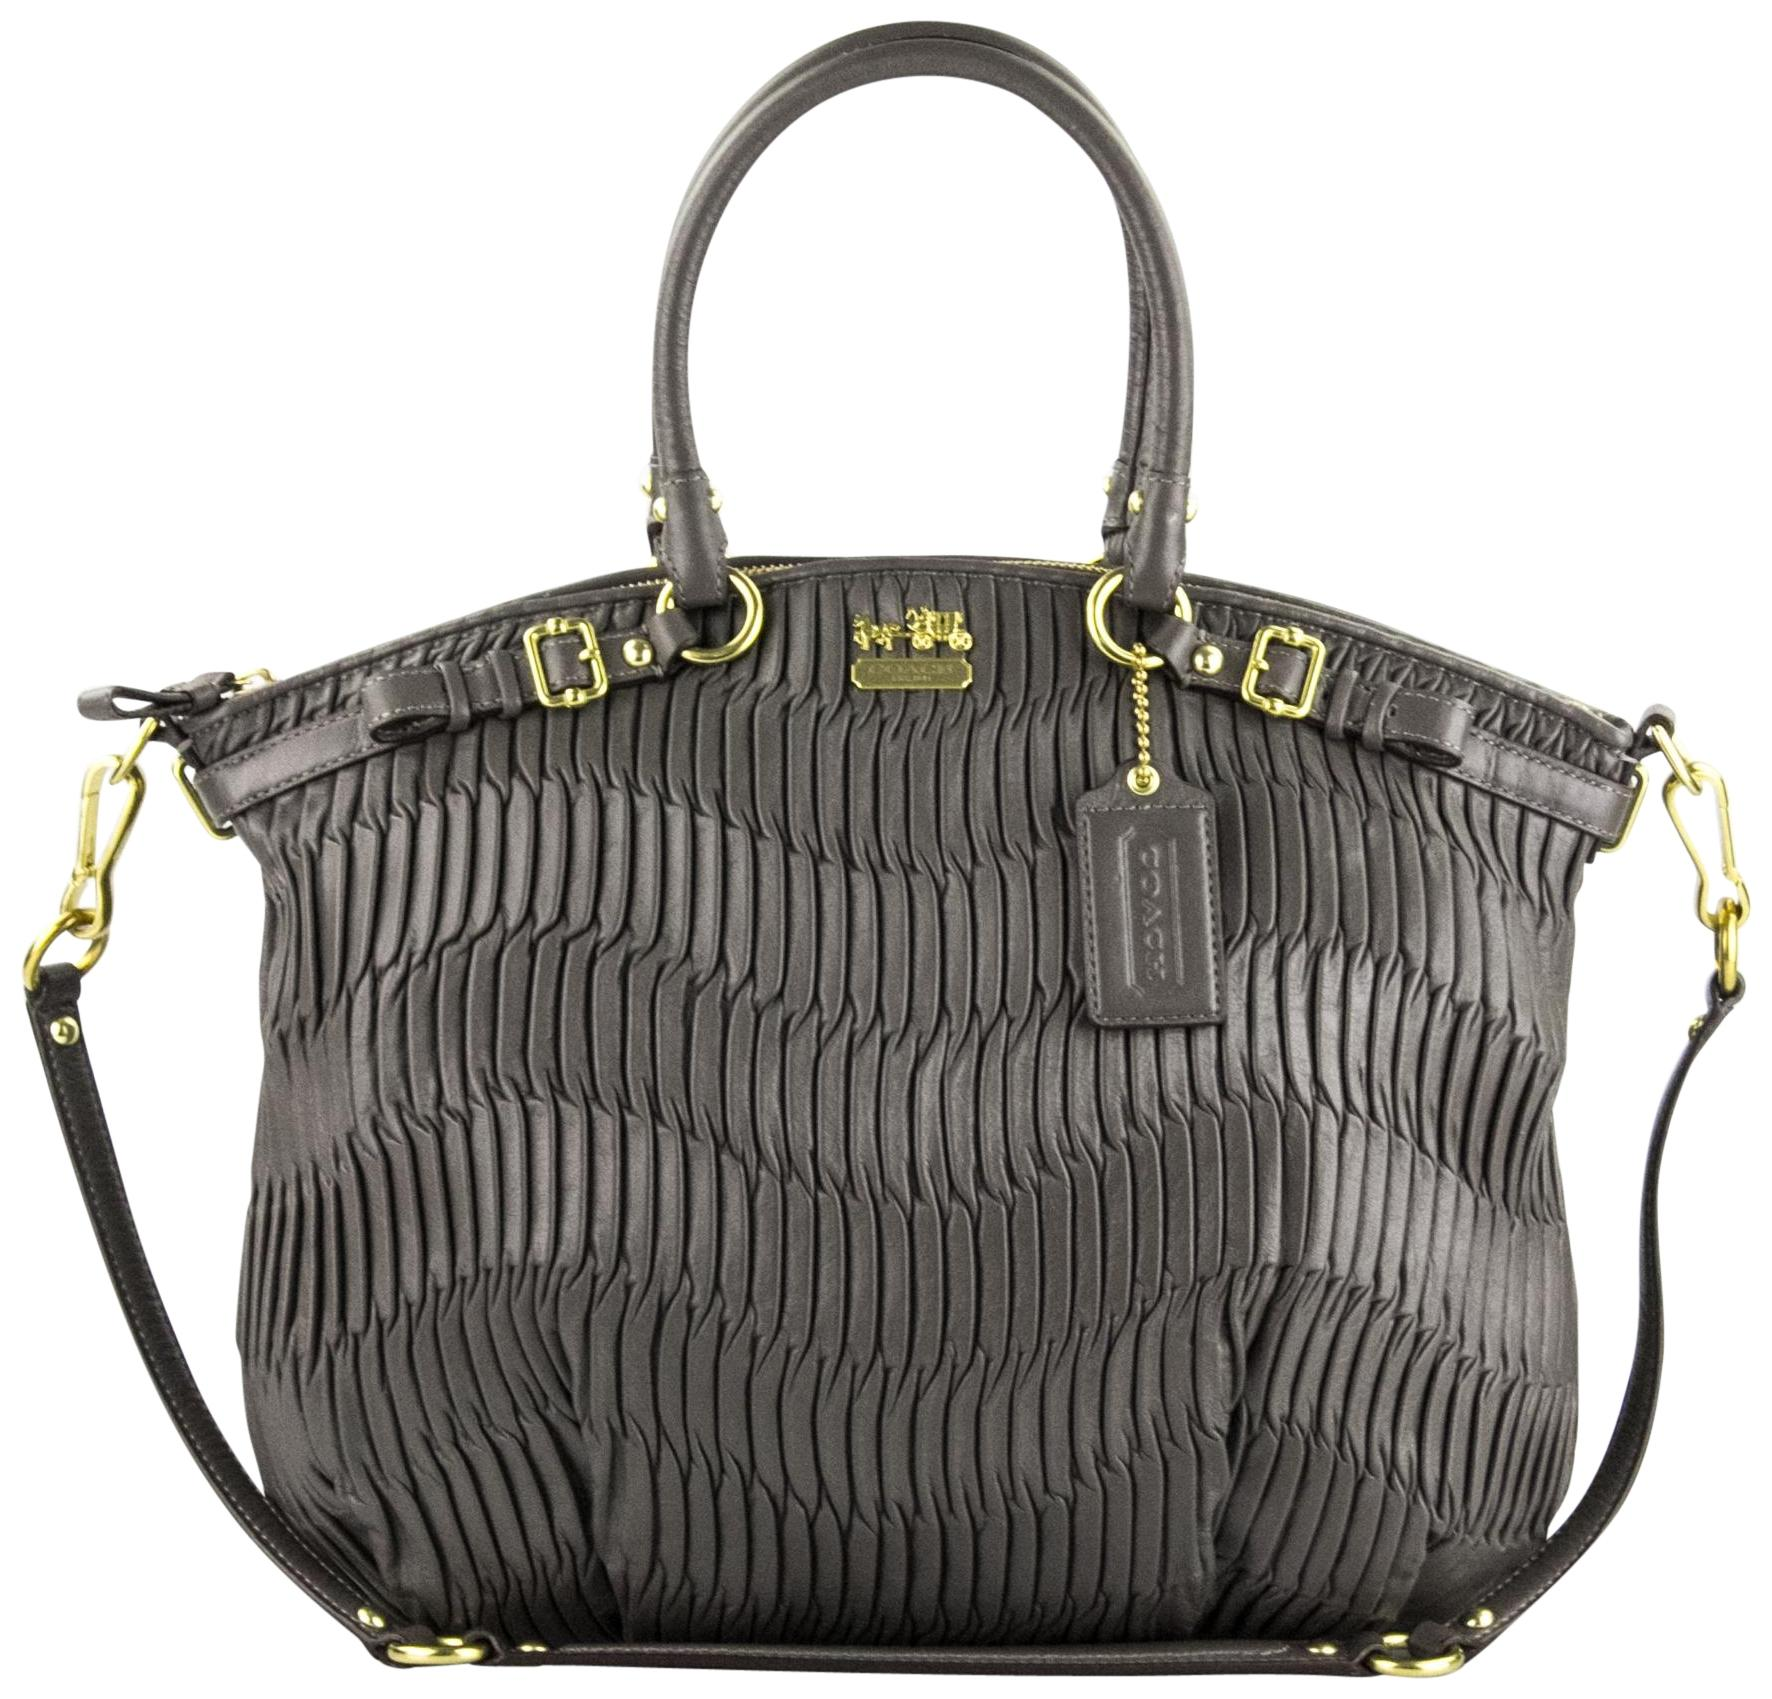 d42b0dfe4370 ... discount code for coach madison gathered leather lindsey north south  satchel in grey d792b 15ec3